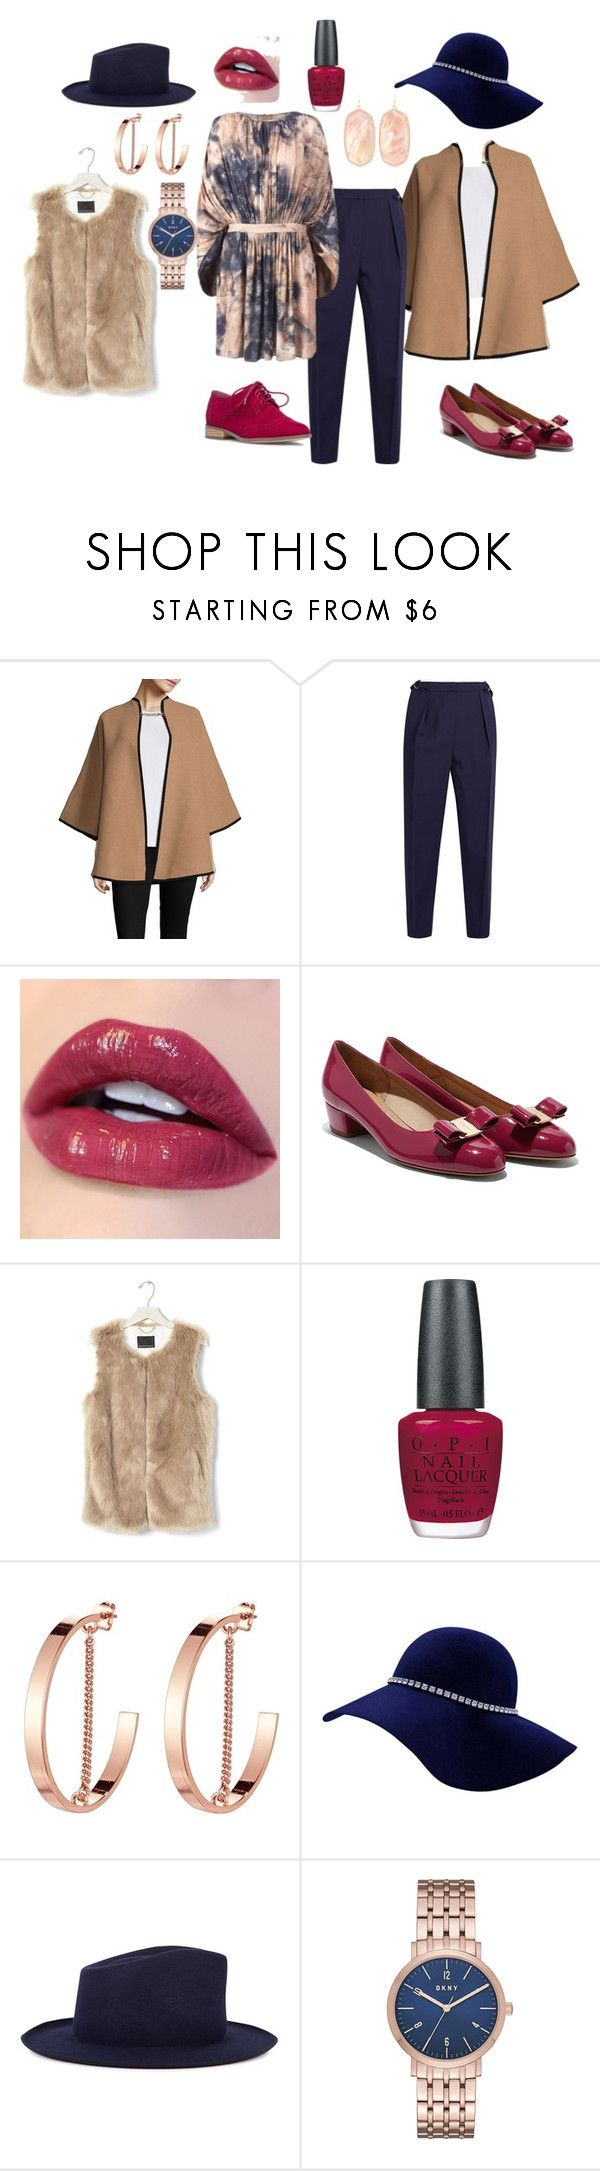 """Блуза с рукавами кимоно"" by evavendoc on Polyvore featuring мода, Burberry, Roksanda, Banana Republic, OPI, Jenny Bird, Satya Twena, DKNY и Kendra Scott"